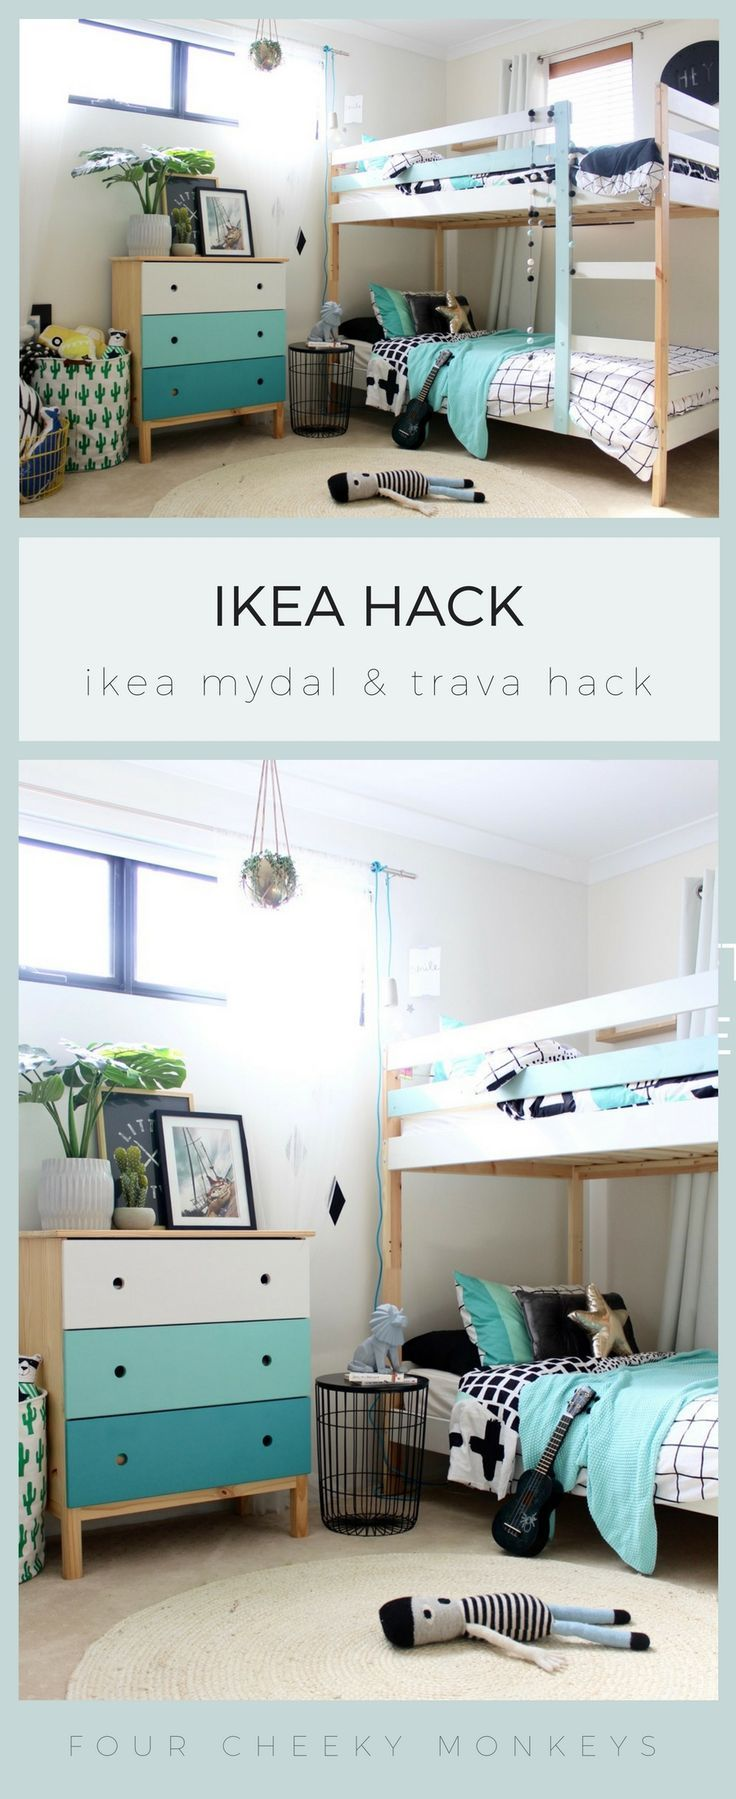 547 besten diy ikea hacks bilder auf pinterest ikea hacks wohnideen und diy m bel. Black Bedroom Furniture Sets. Home Design Ideas